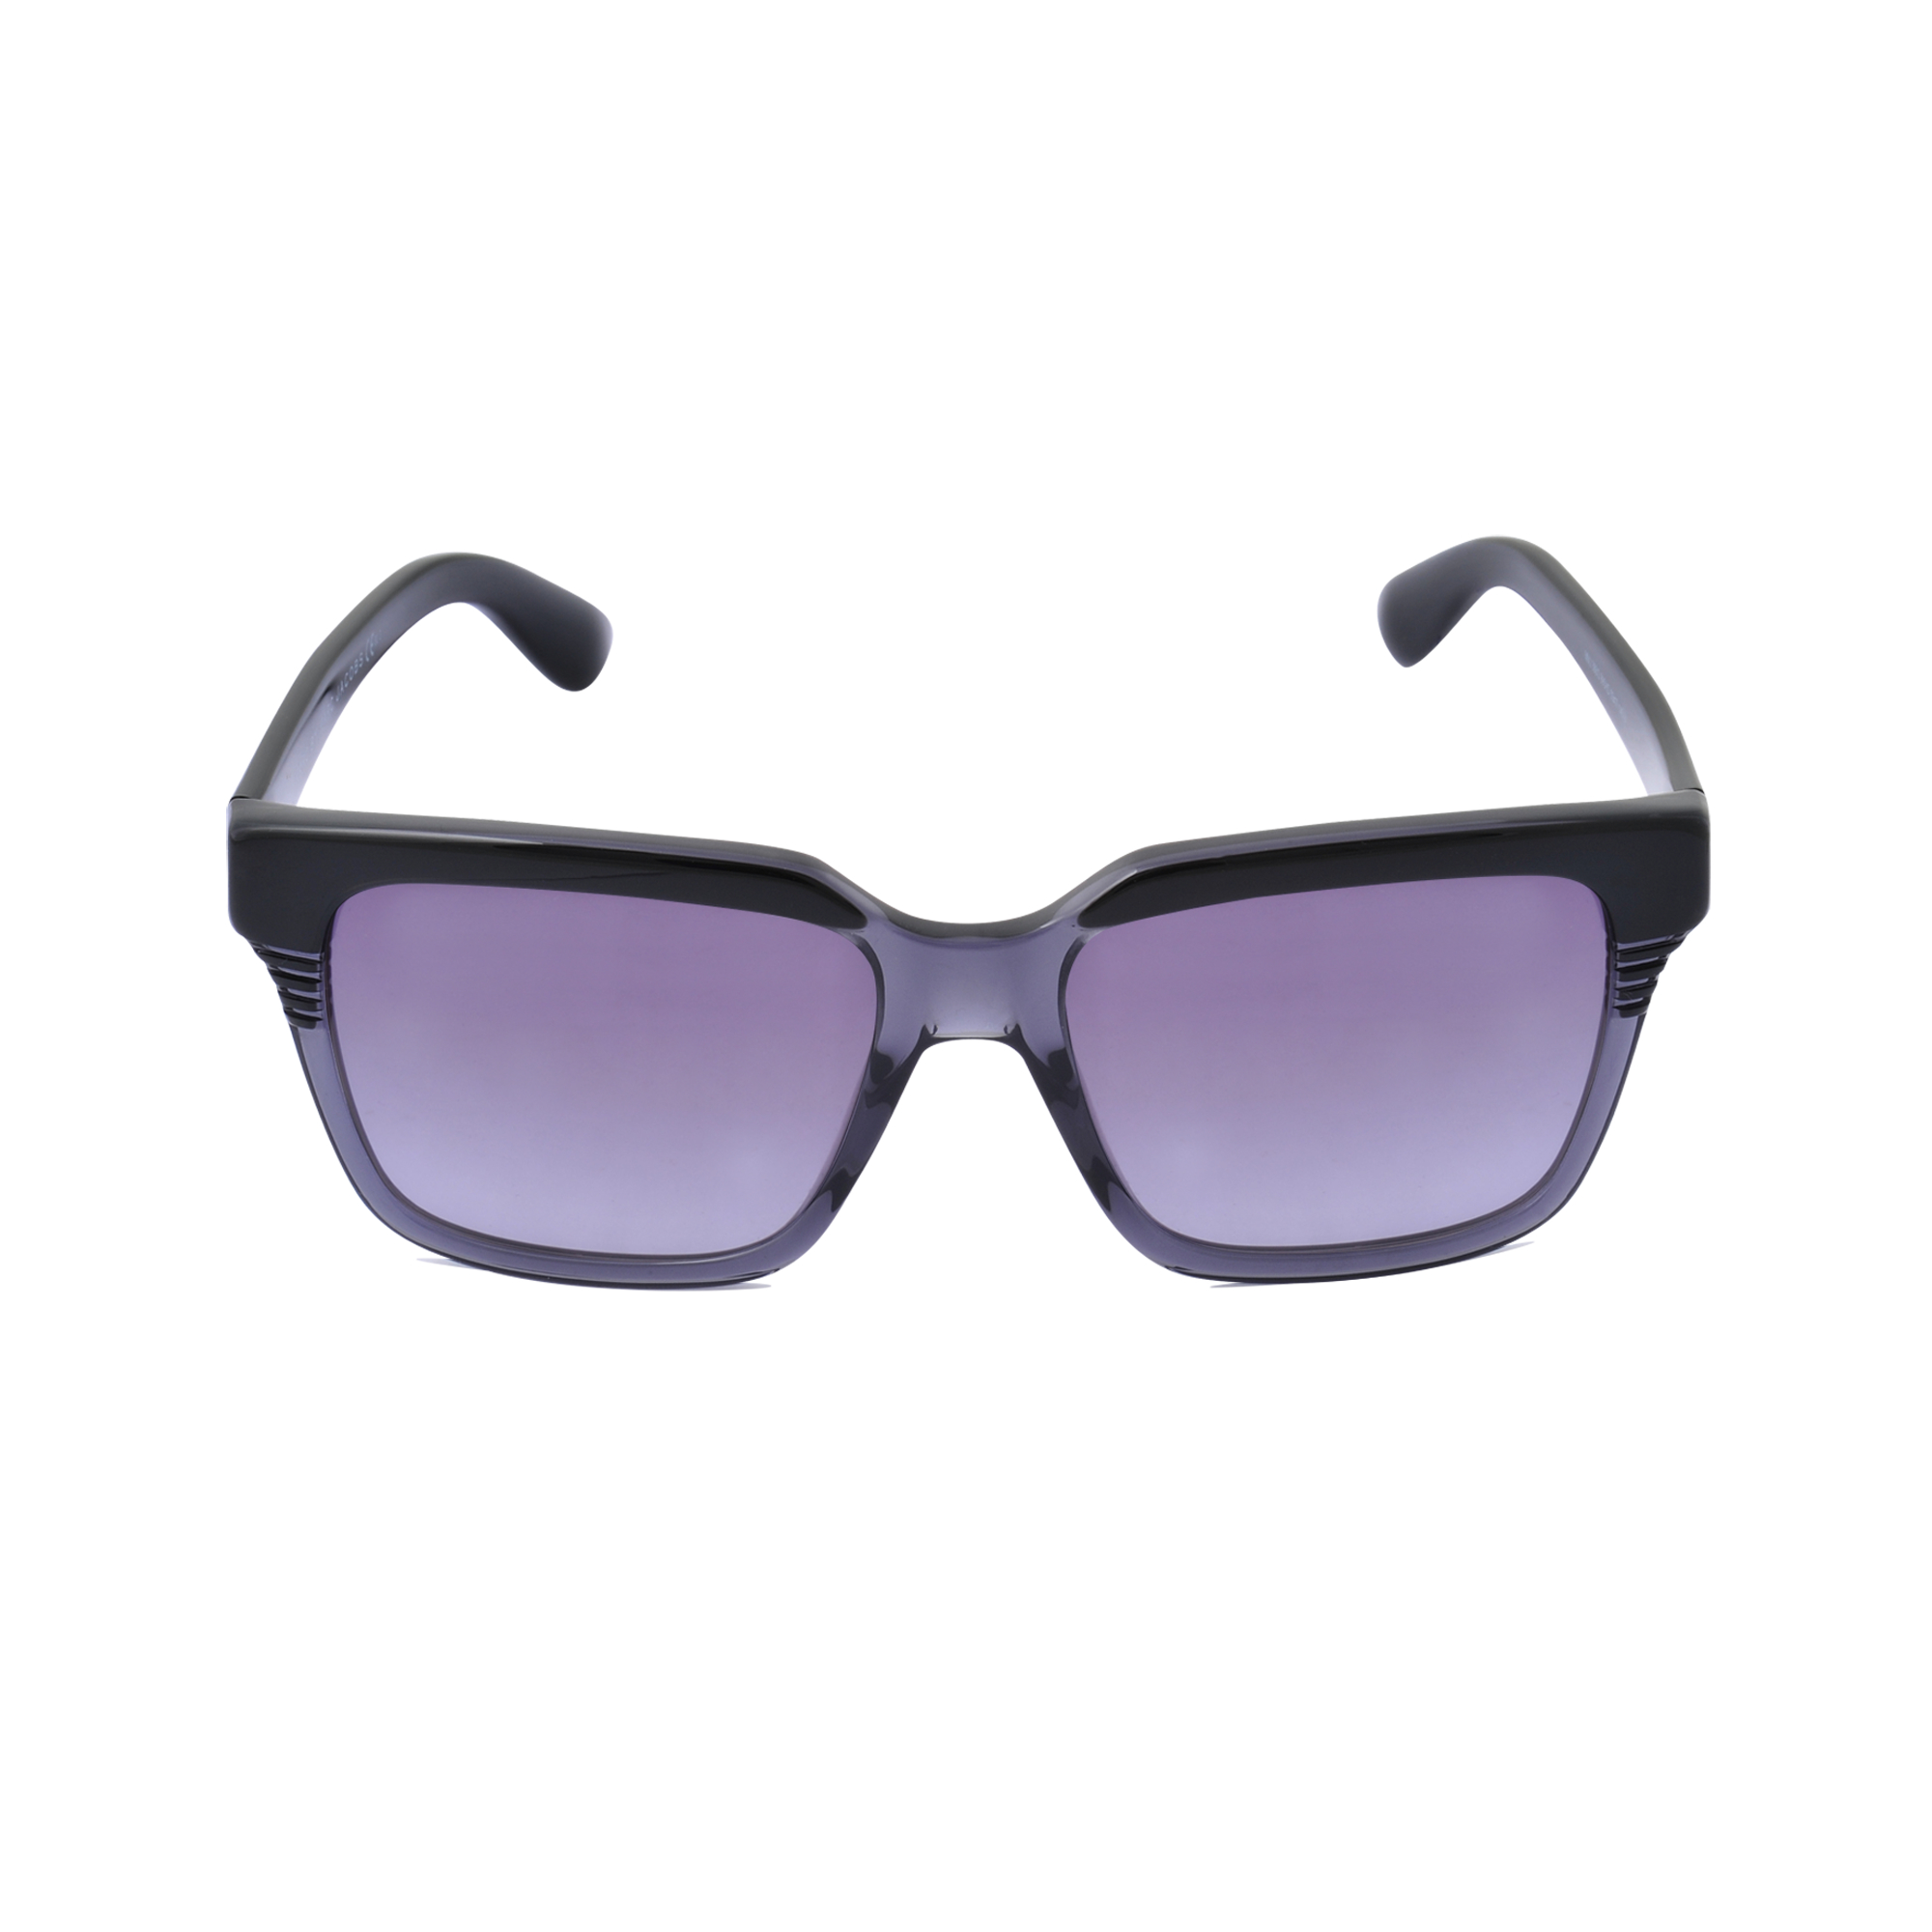 4d874b7e4594 Marc By Marc Jacobs Mmj 388/s Black Sunglasses in Gray - Lyst